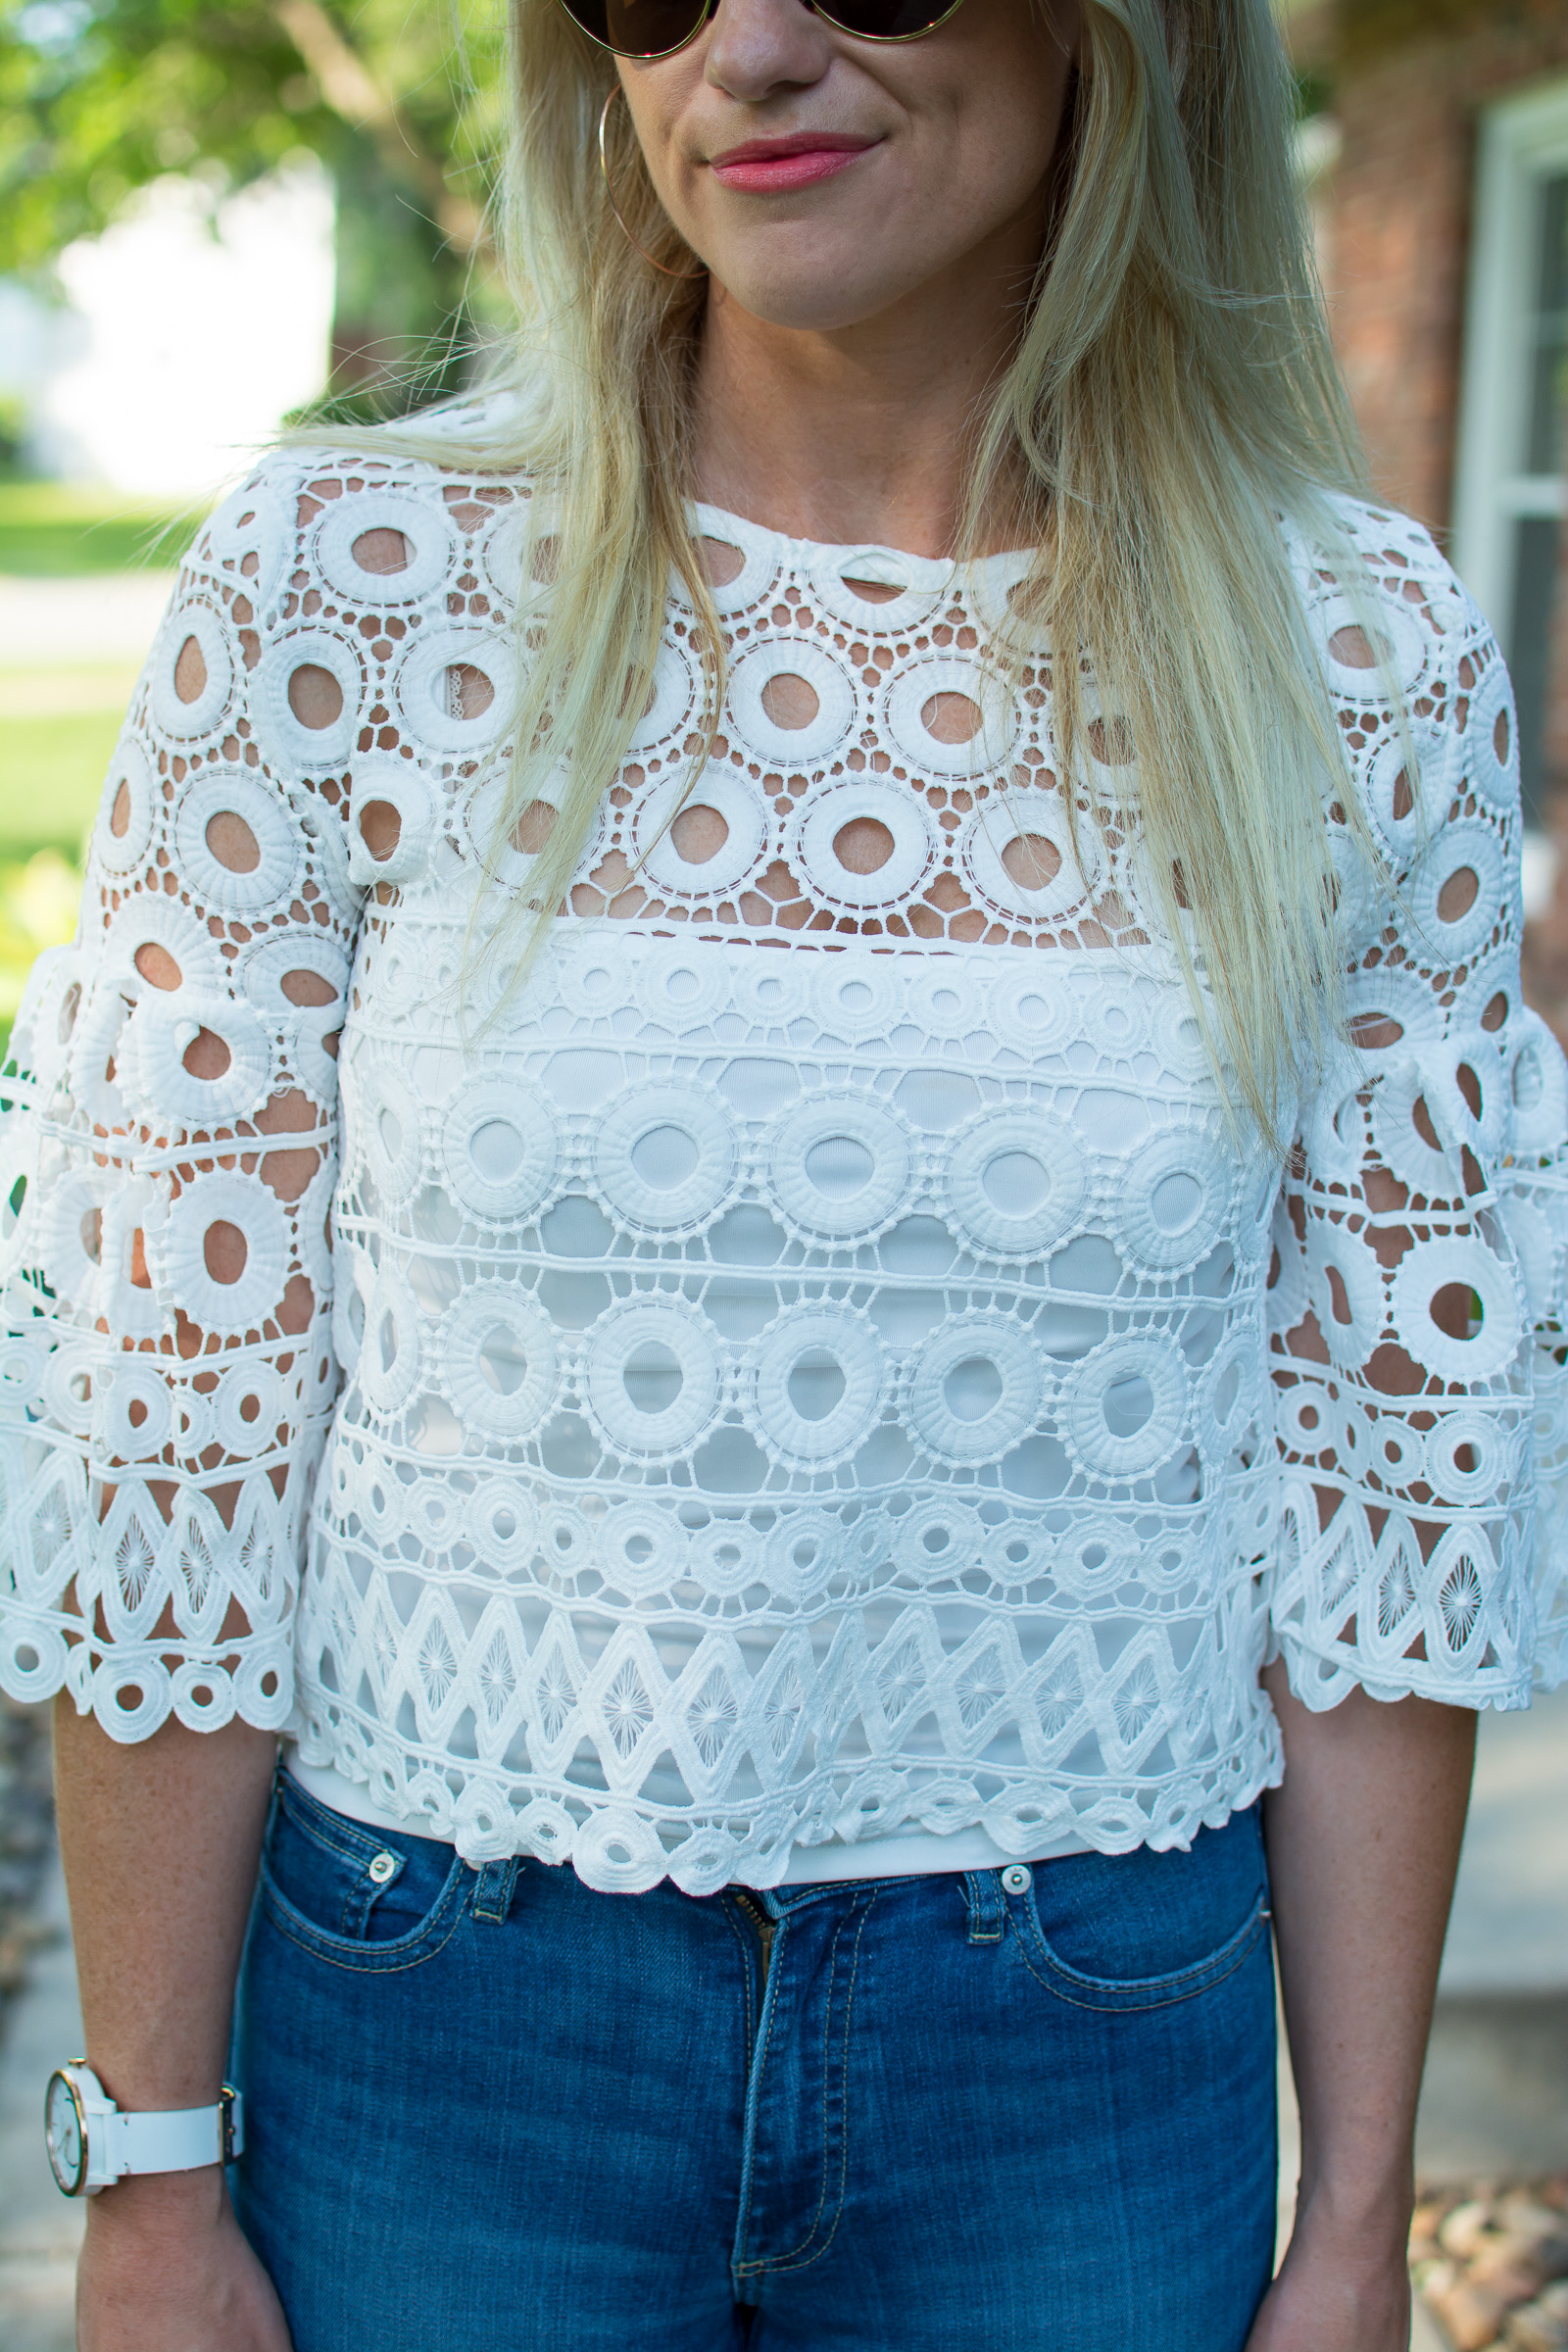 Summer Outfit Idea: White Crochet Top. | Ashley from LSR